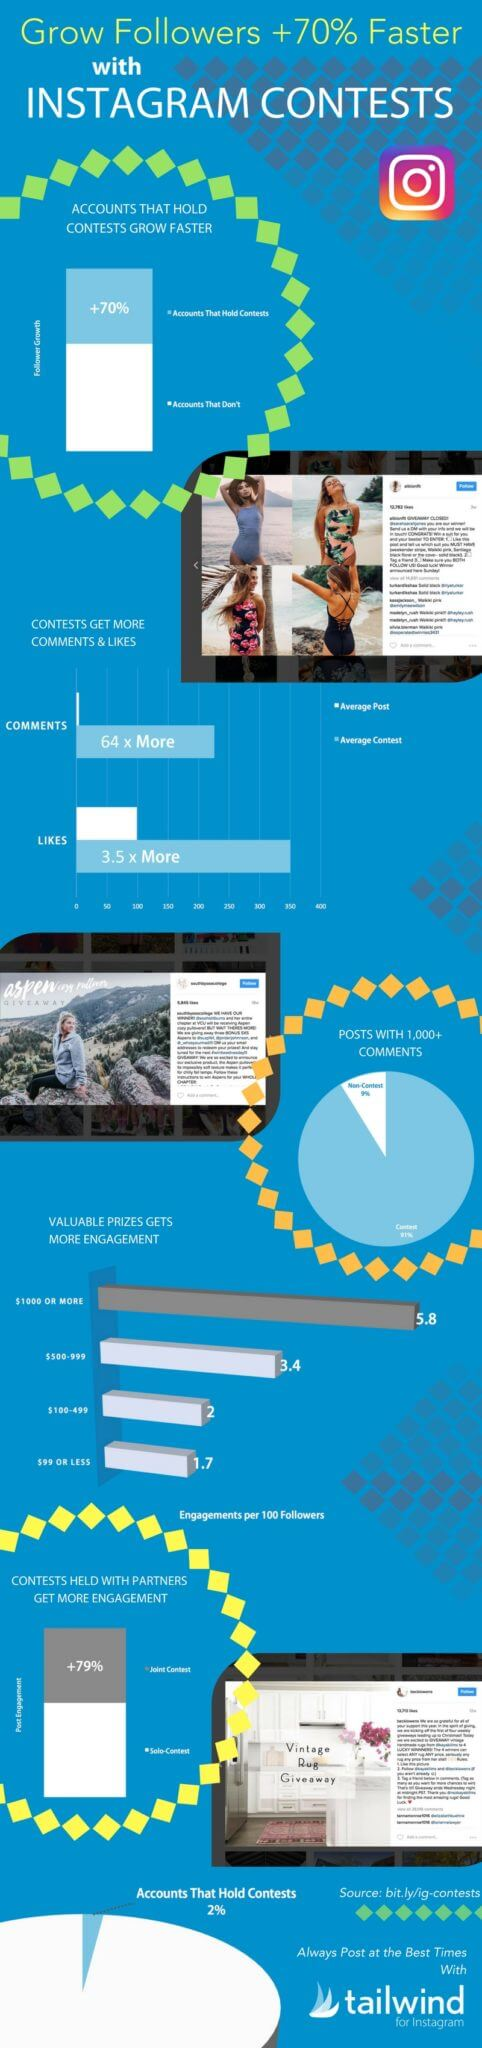 Grow Followers 70 Percent Faster with Instagram Contests an Original Study by Tailwind with Statistics and Infographic